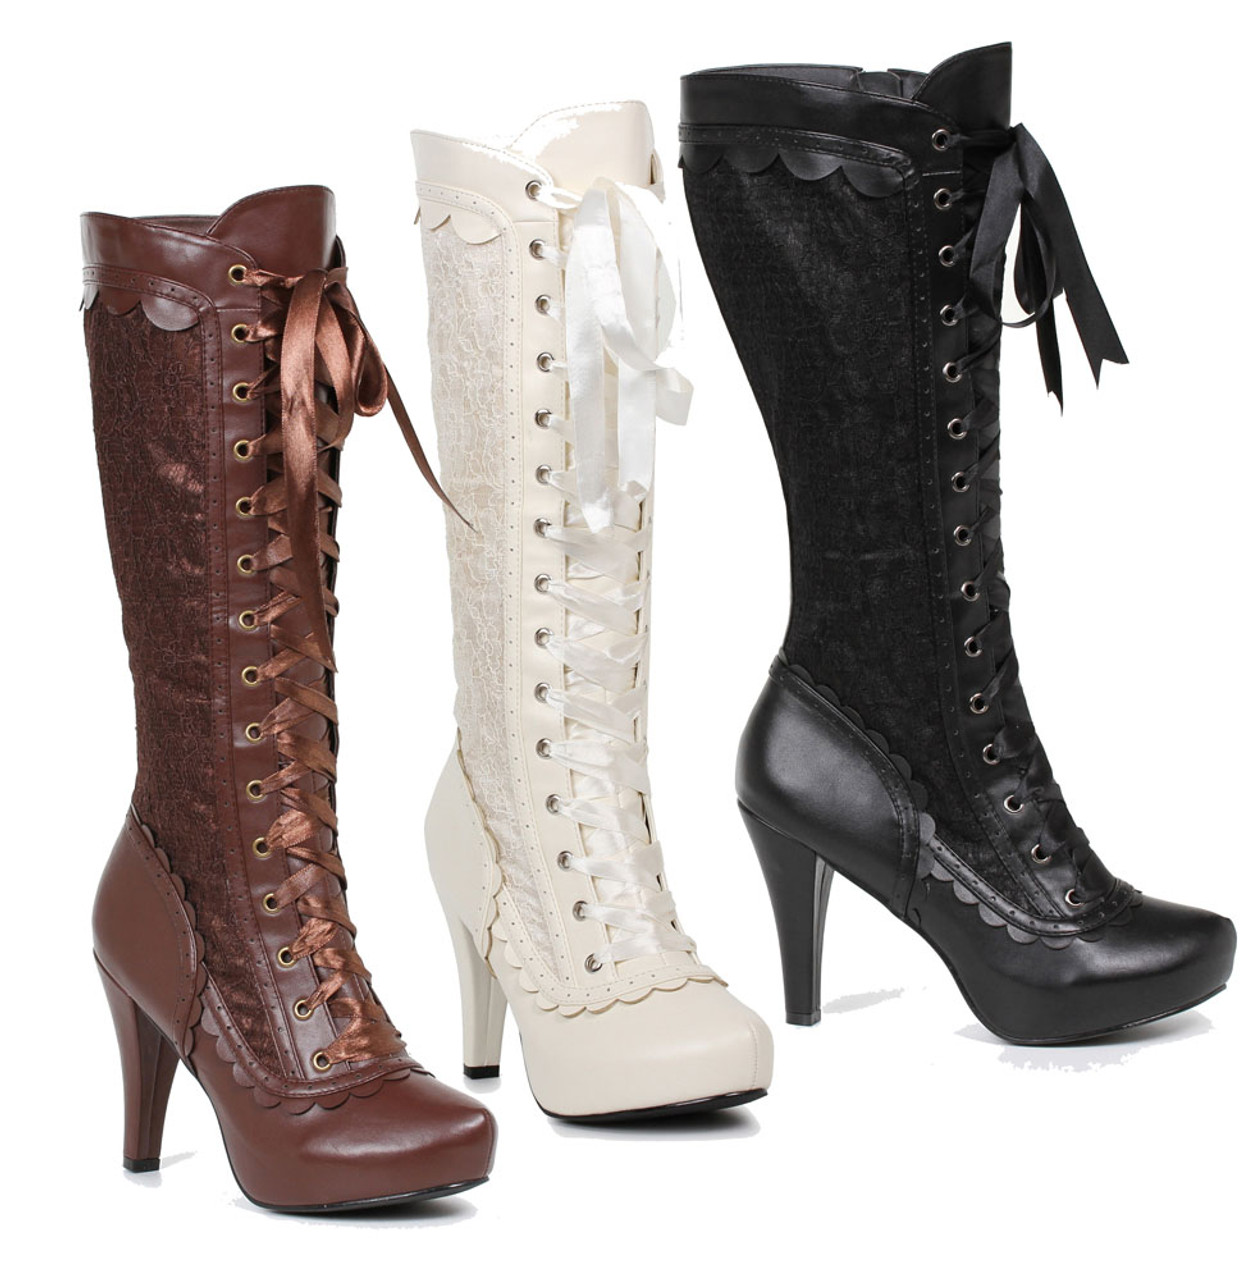 46426ed9bb78a 4 inch heel lace-up knee high boots with lace overlay ...